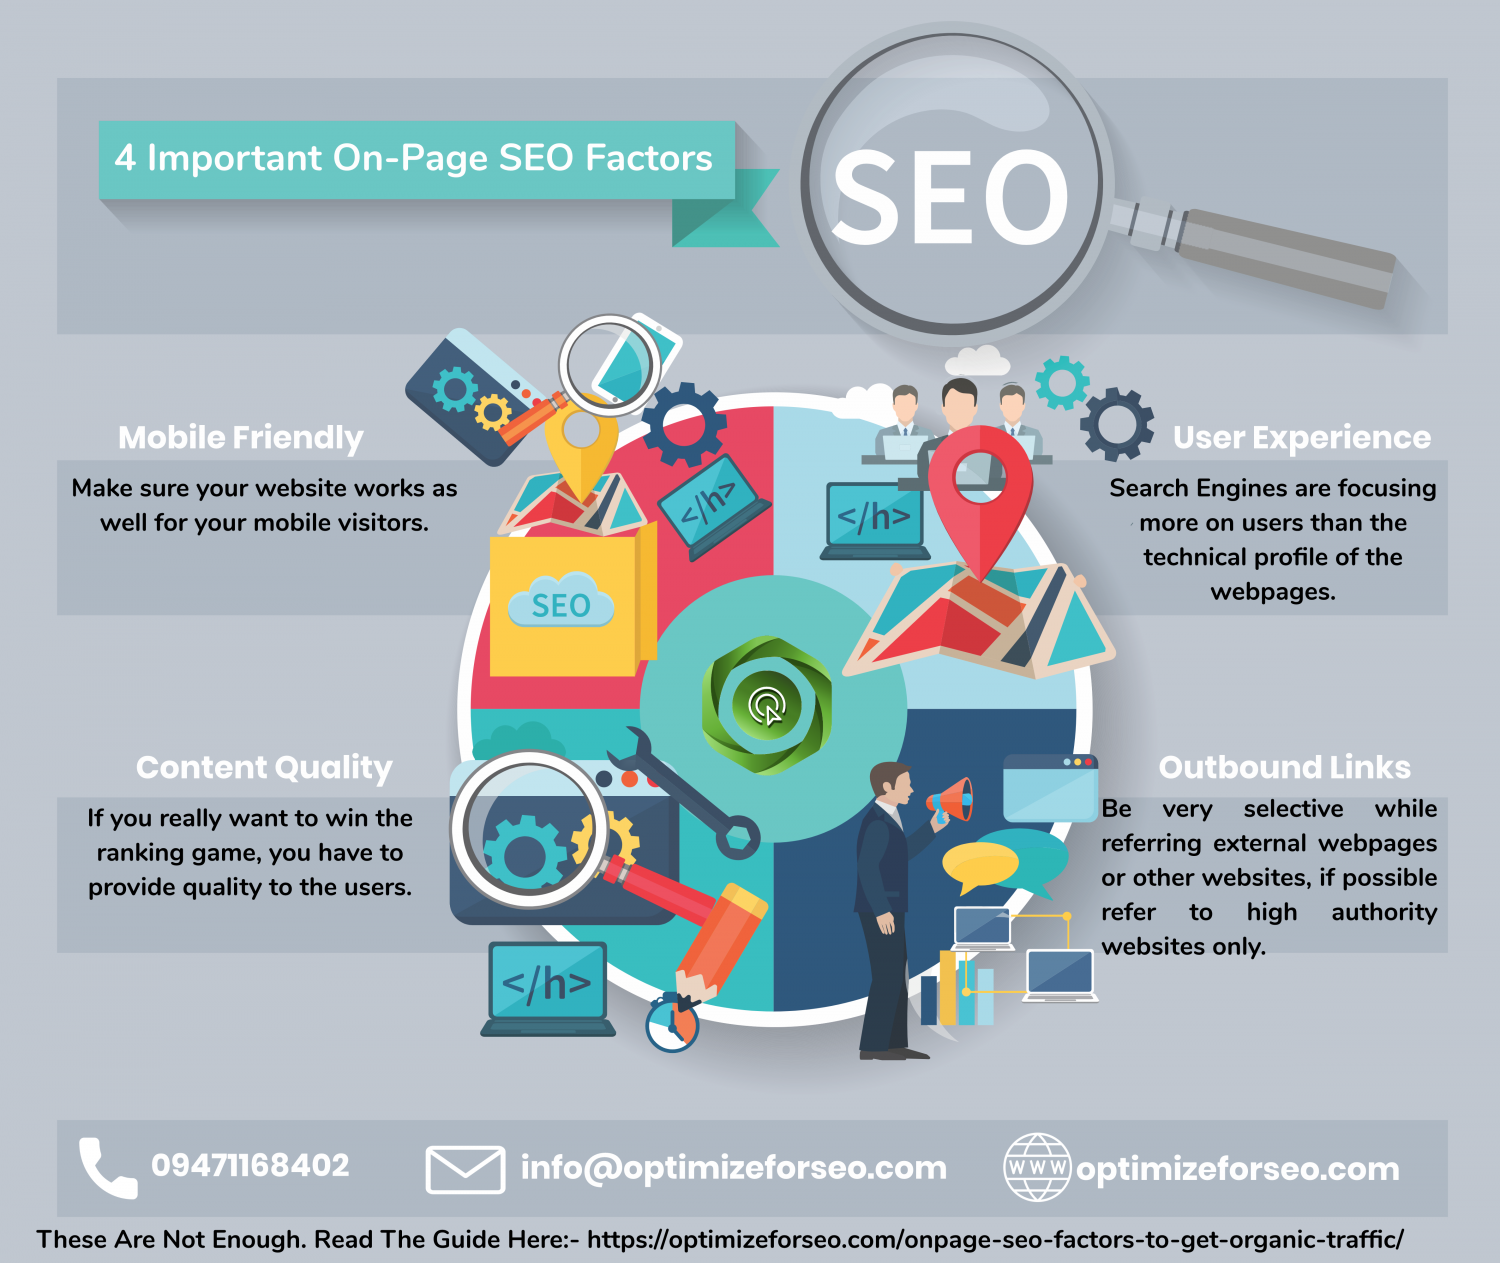 4 Important On-Page SEO Factors Infographic